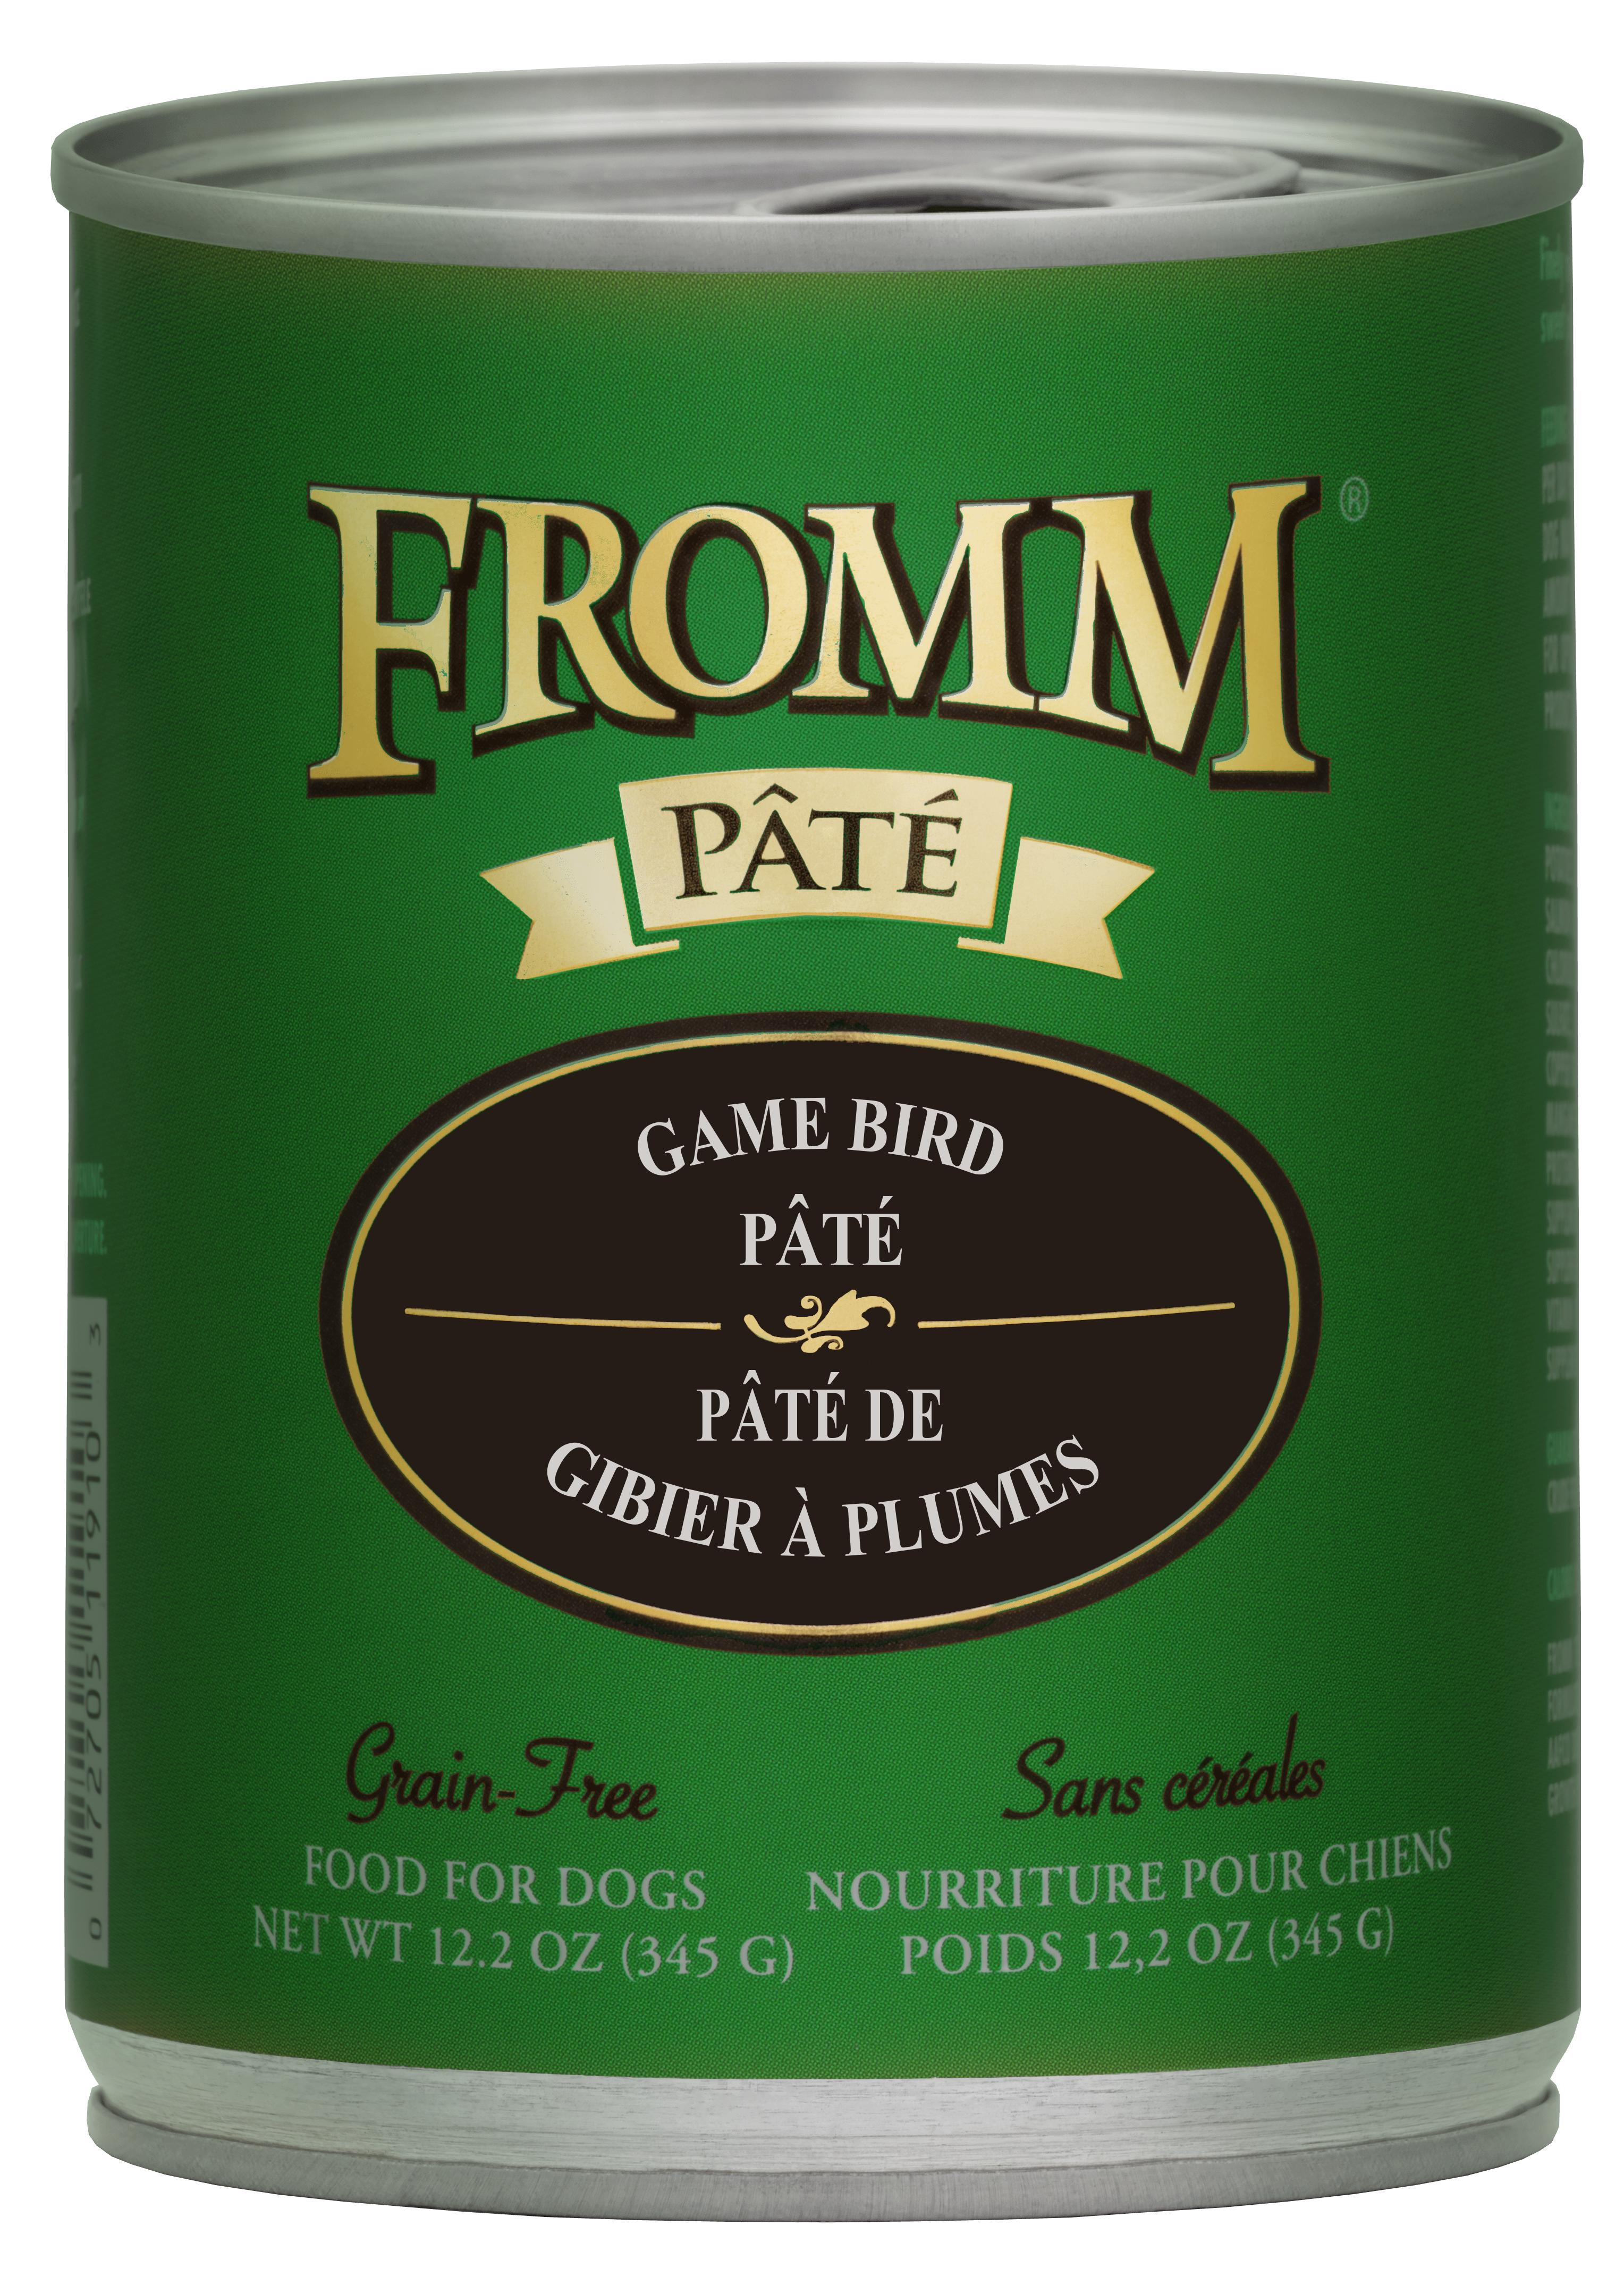 Fromm Game Bird Pate Canned Dog Food, 12.2-oz, case of 12